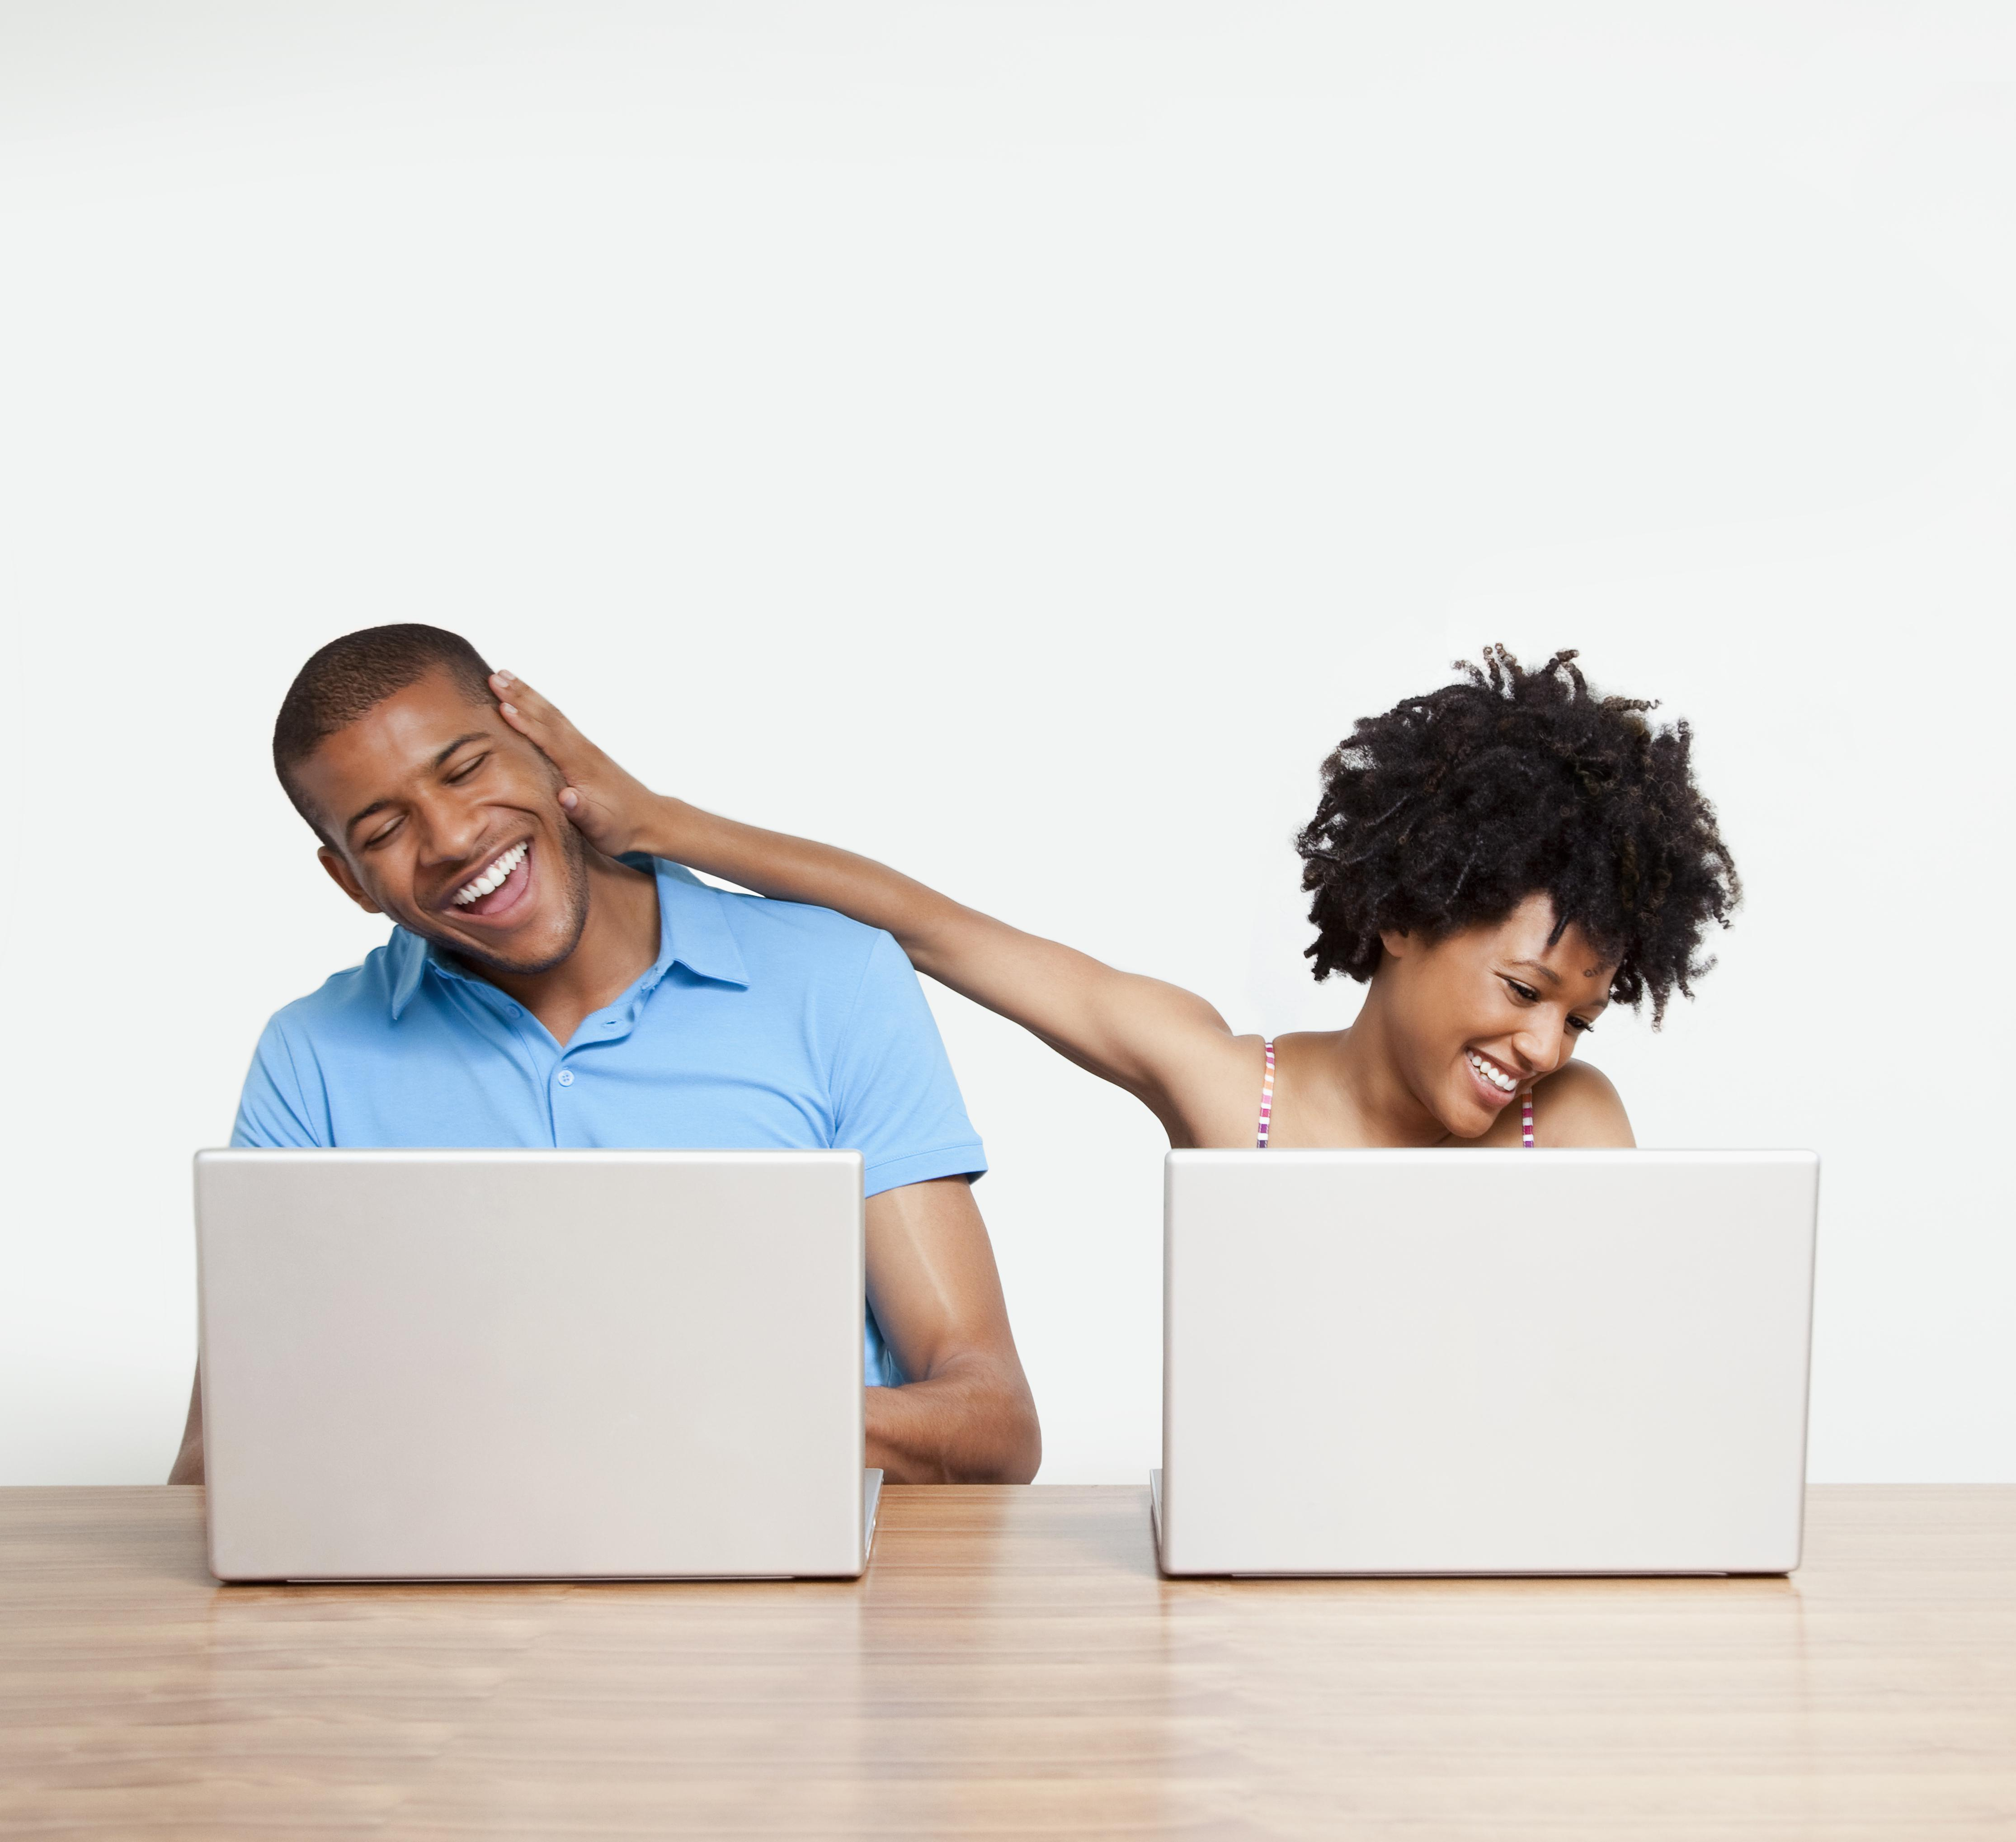 Woman joking with man as they work on laptops